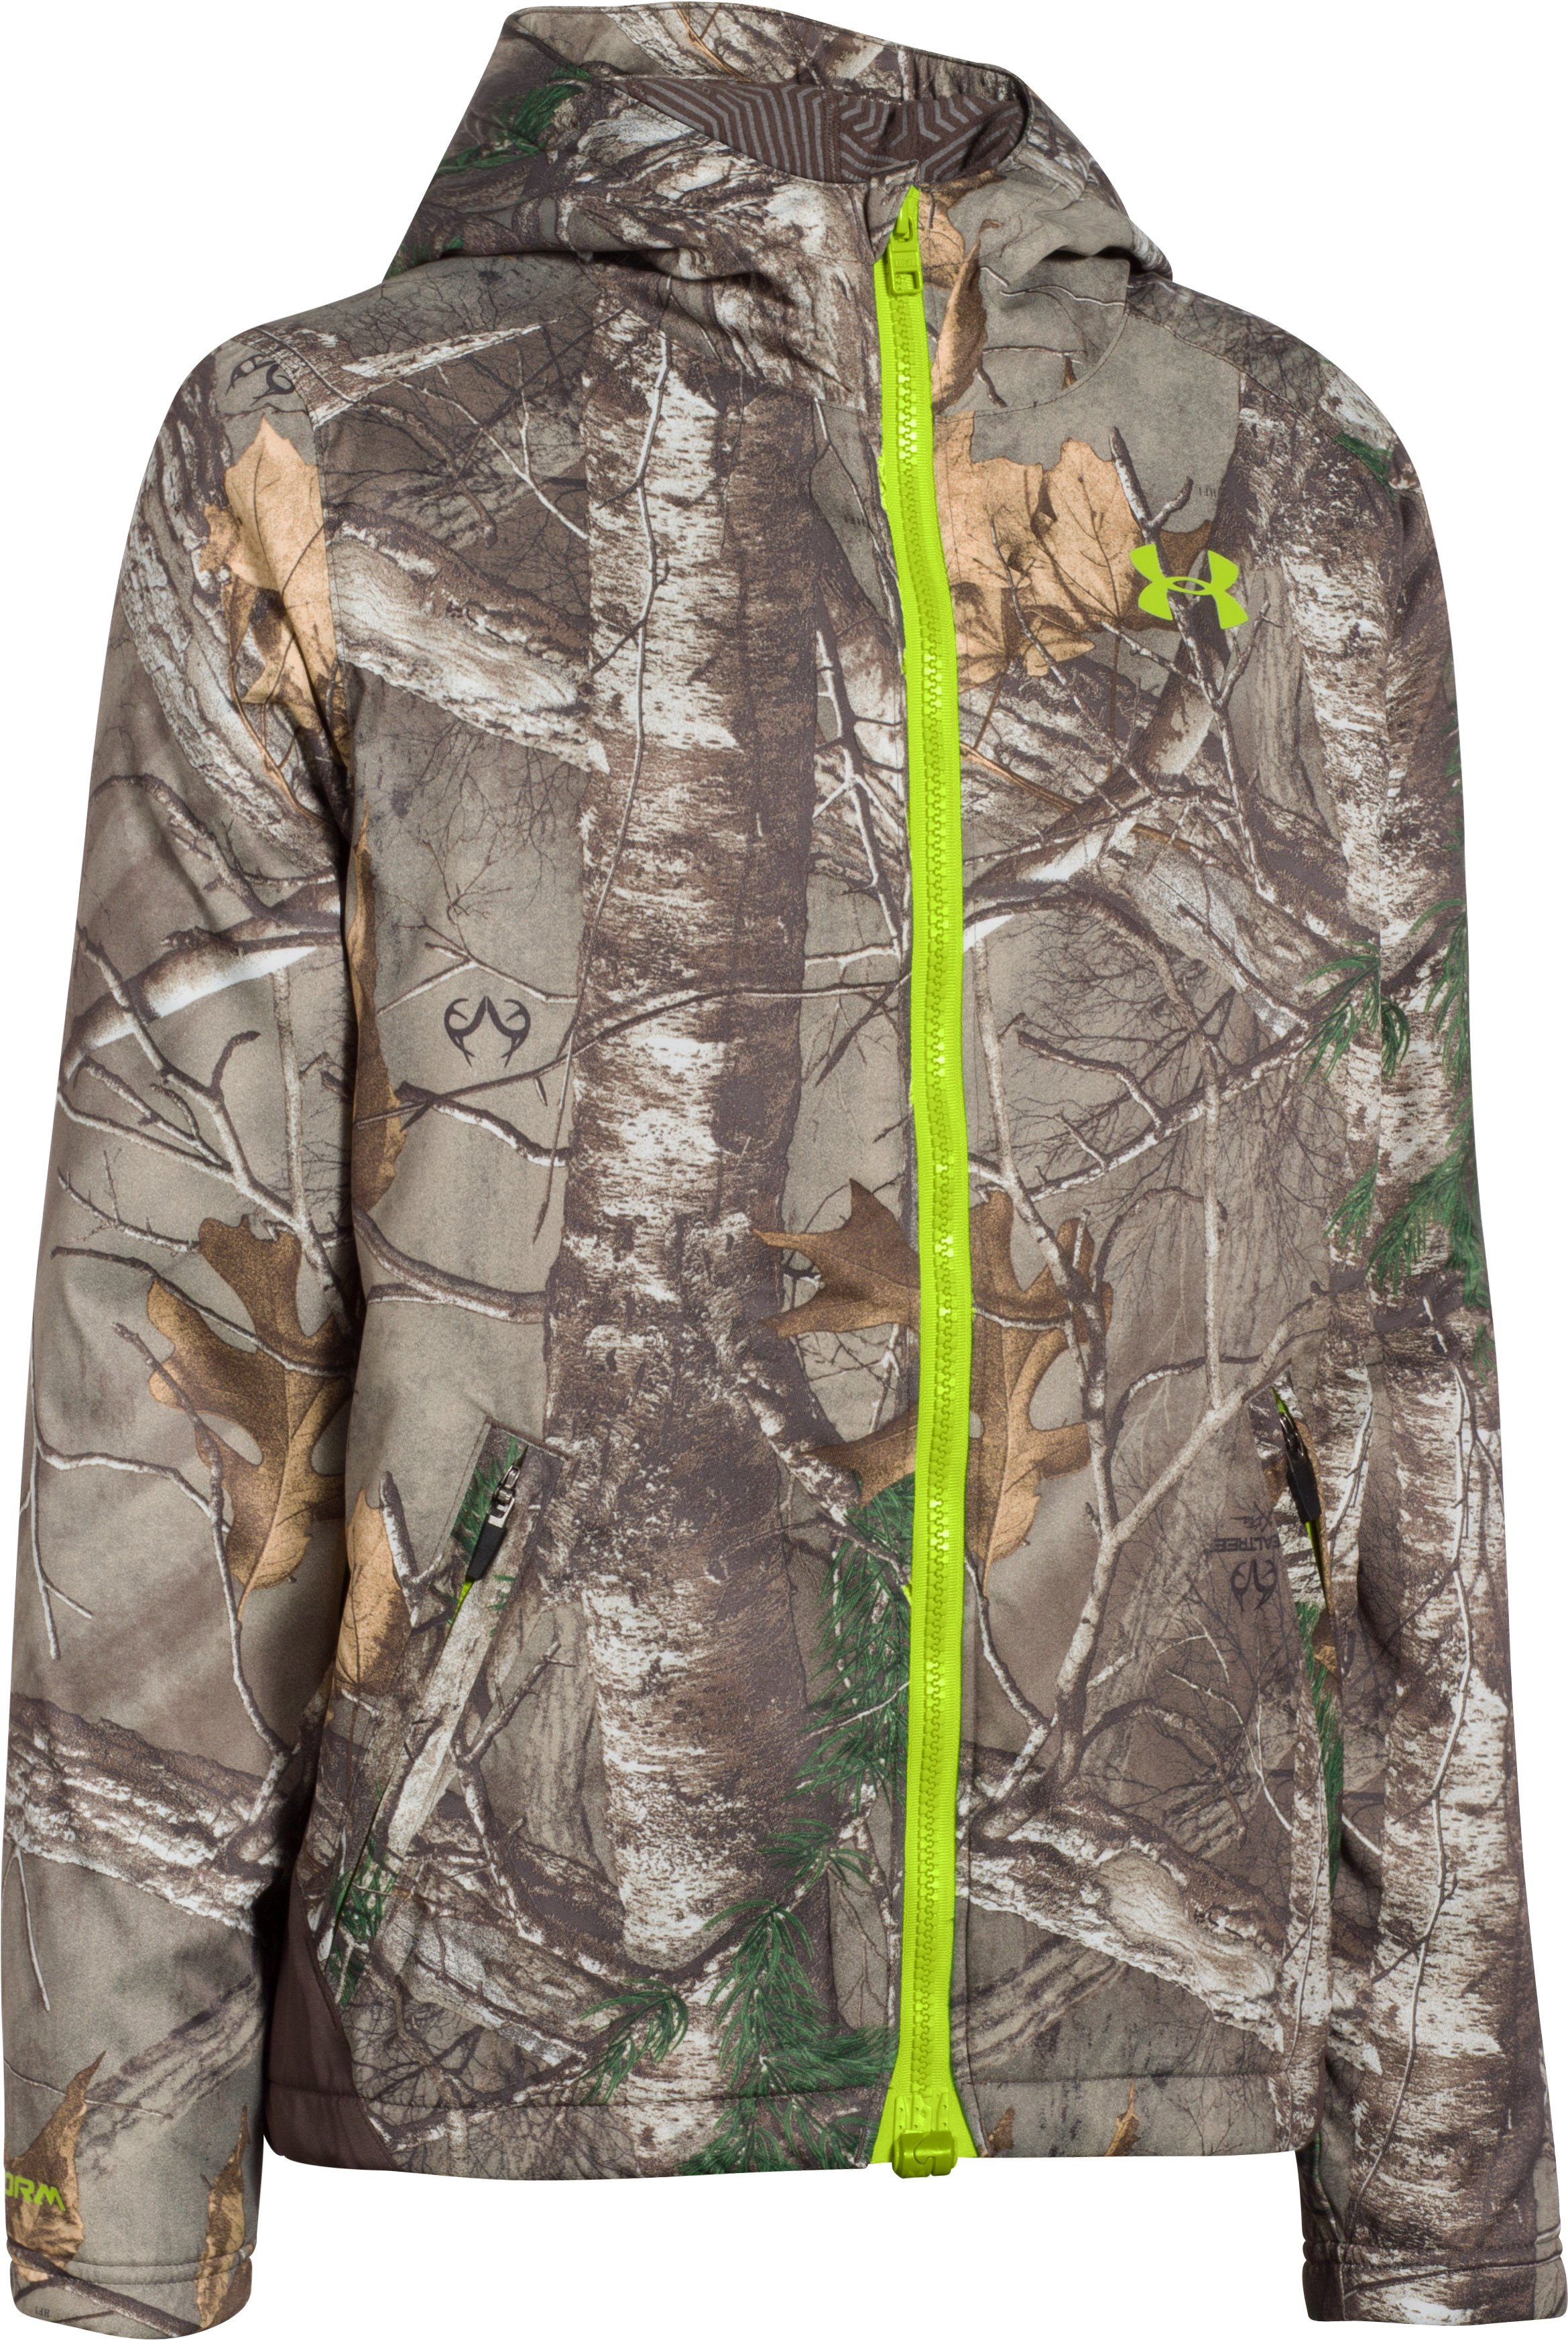 Boys' UA Storm Scent Control Barrier Jacket, REALTREE AP-XTRA, undefined